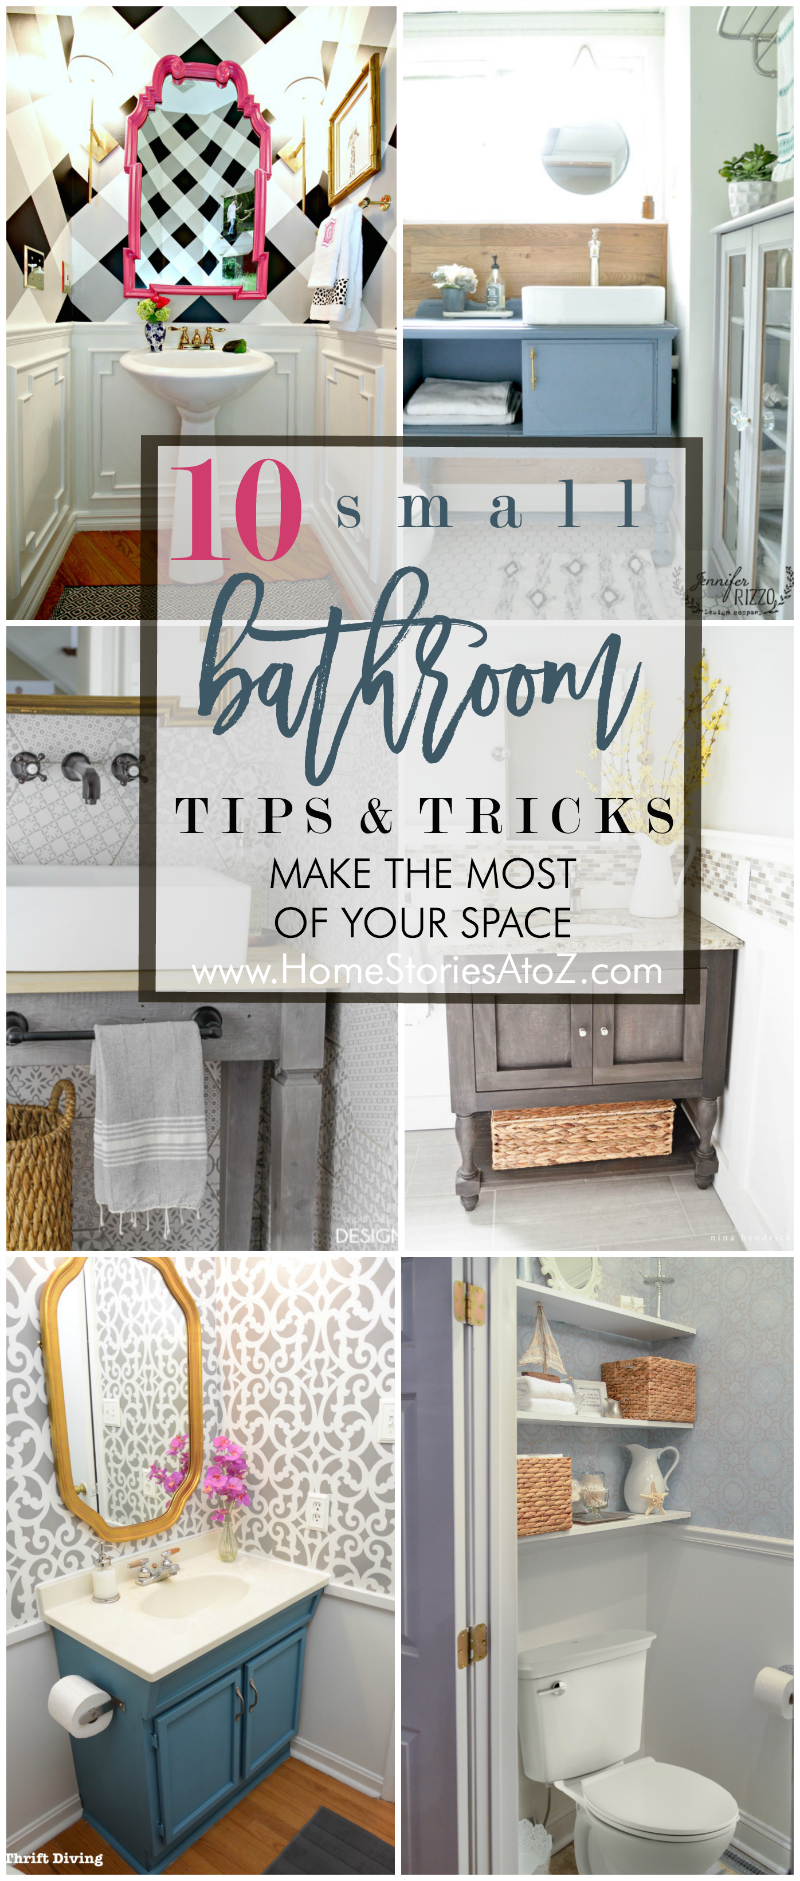 10-small-bathroom-tips-and-tricks